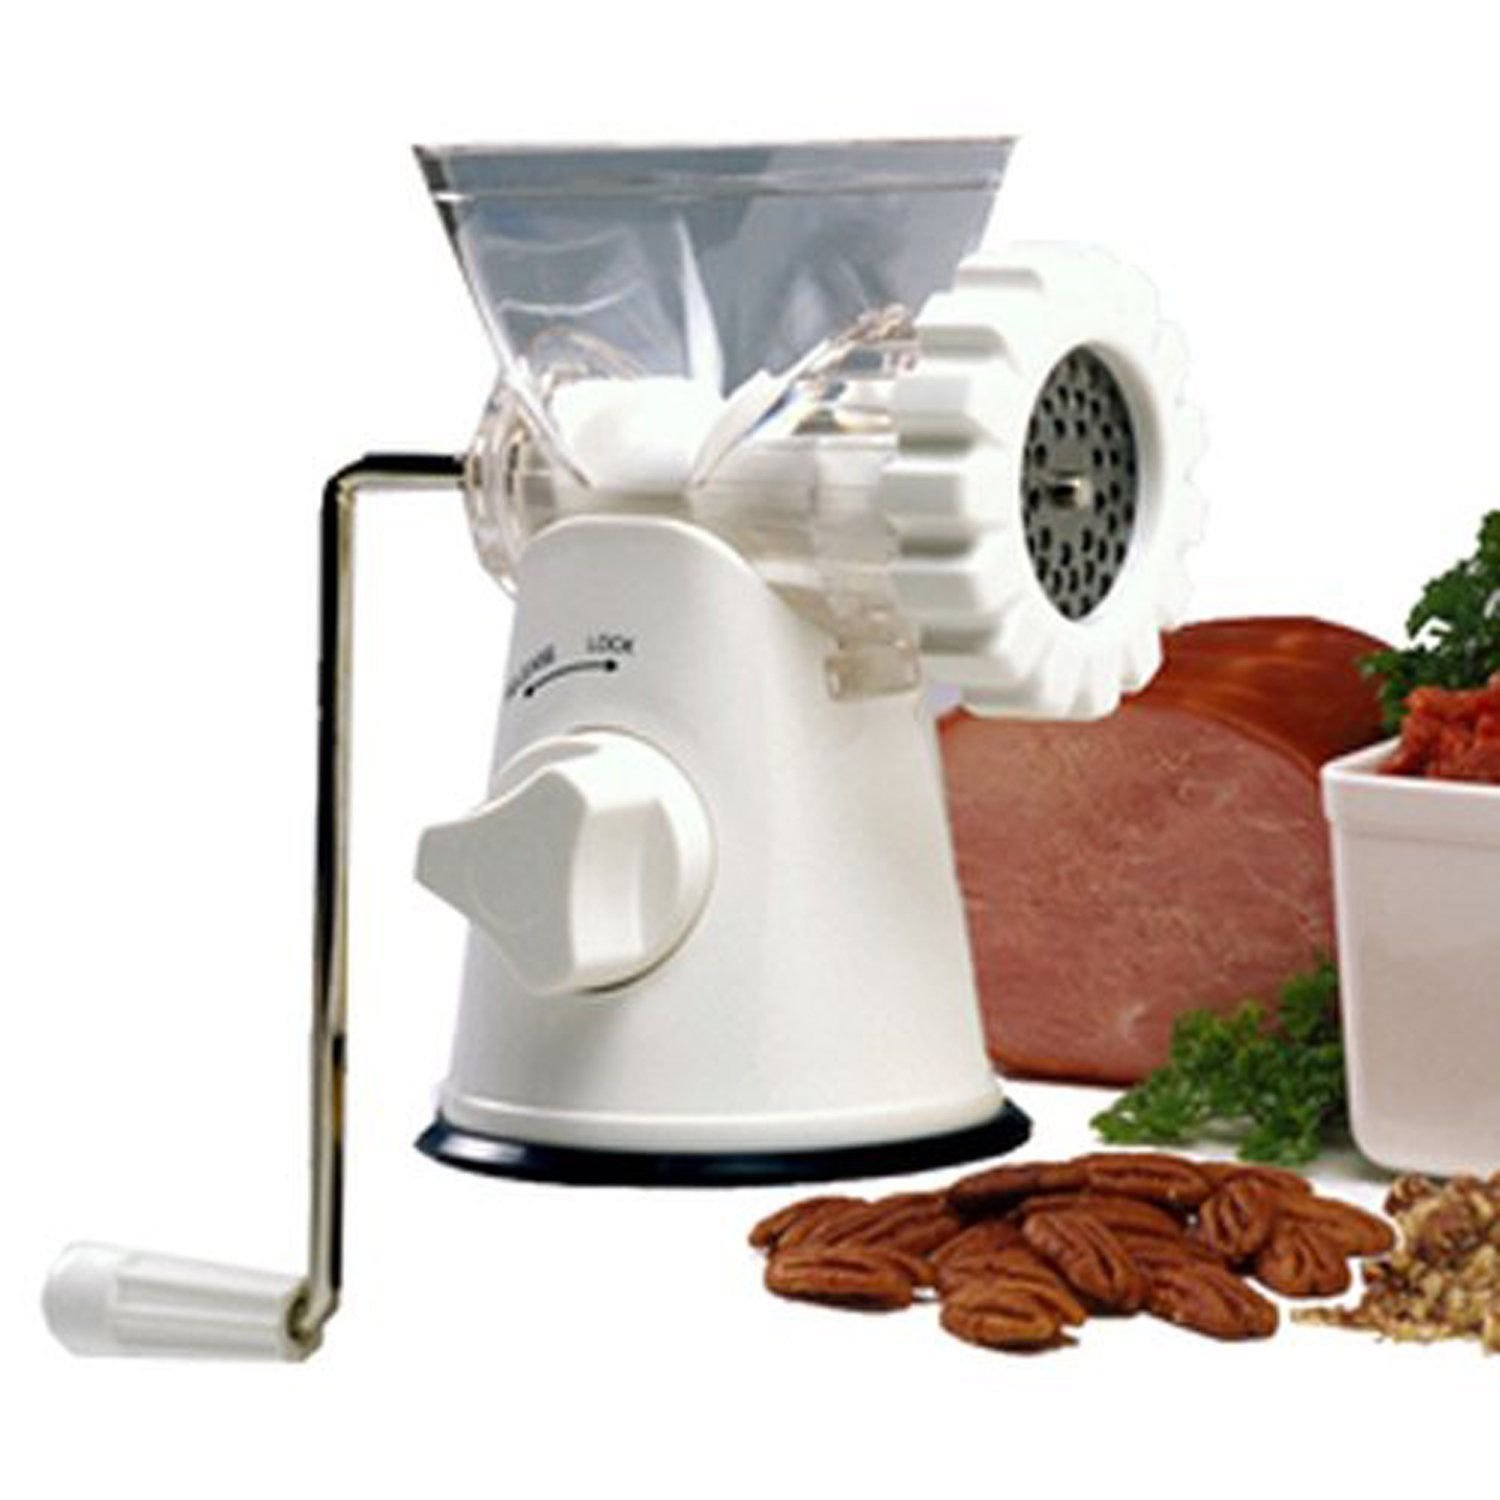 New Norpro 151 3 In 1 Food Meat Grinder Mincer And Pasta Maker Sale New